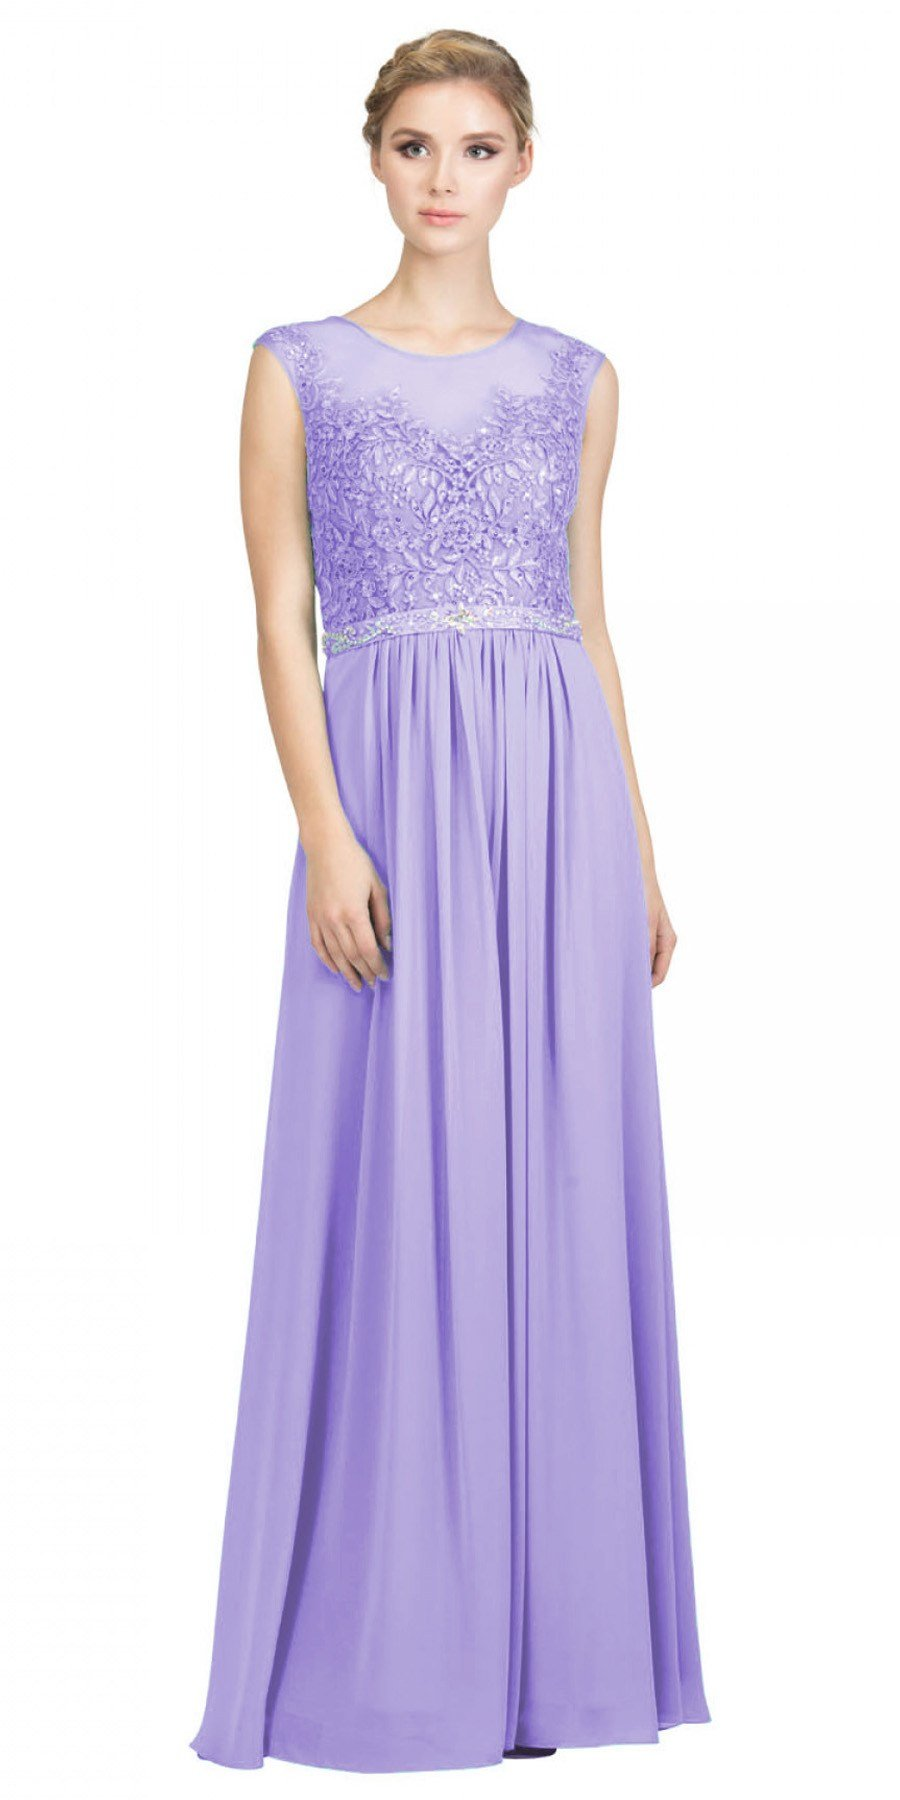 double coupon buying now Official Website Lilac Evening Gown Illusion Neckline Appliqued Bodice